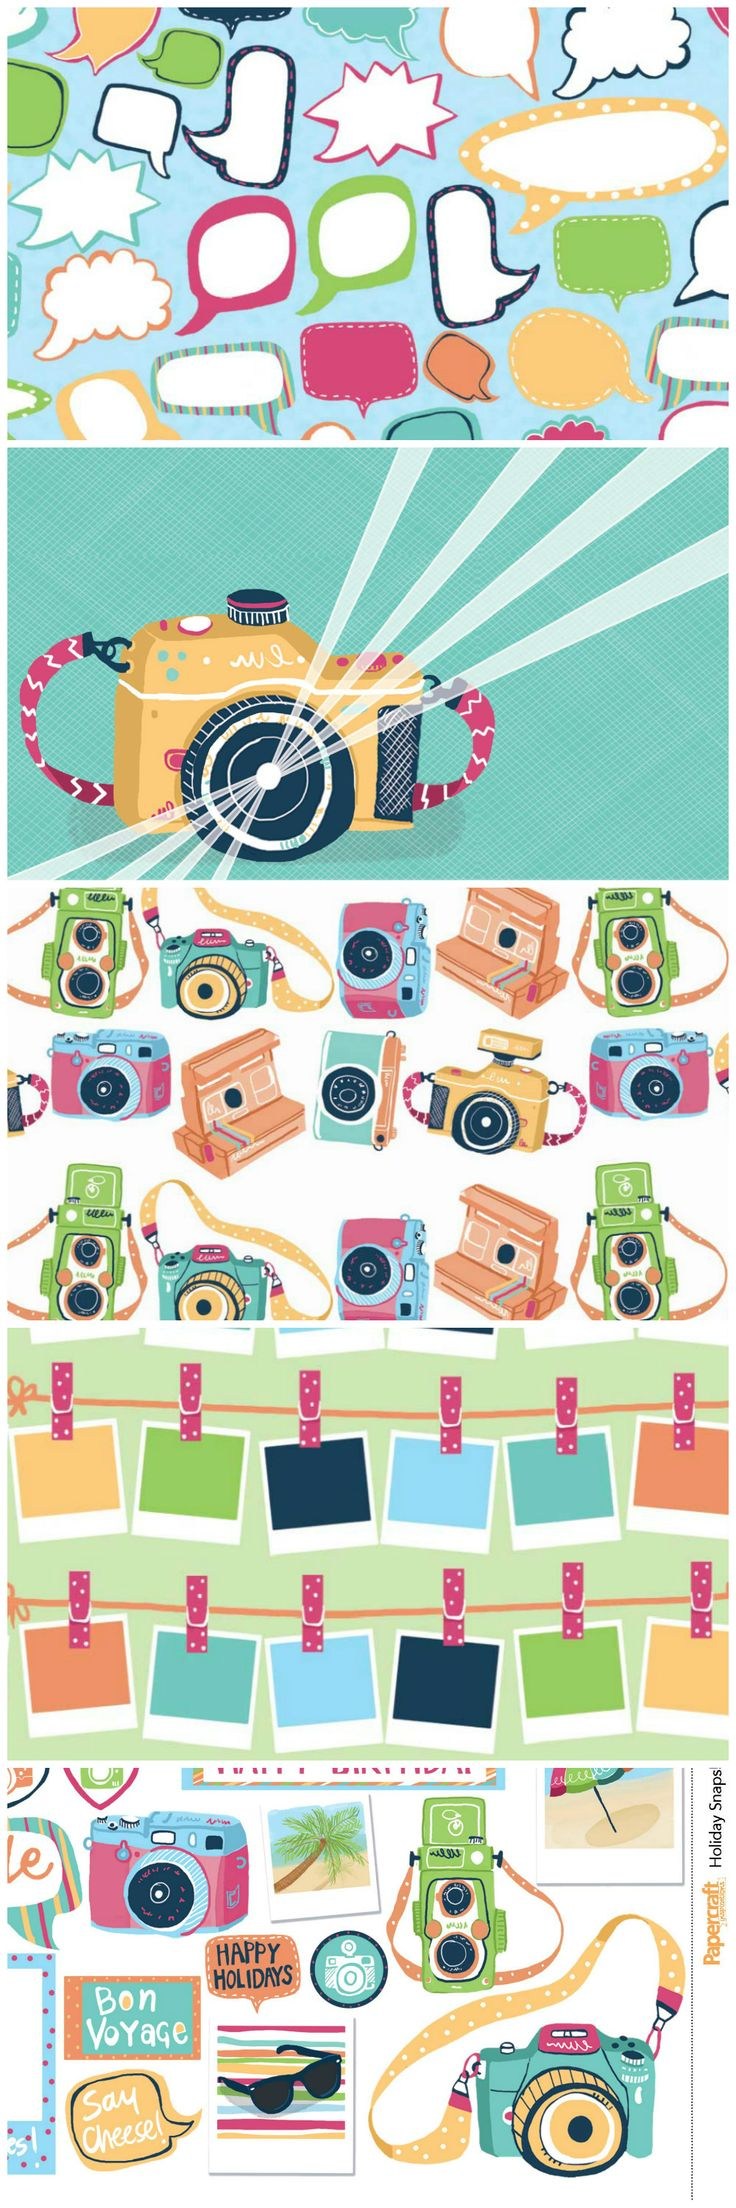 Free Printable Camera From Themed Digital Kit from Papercraft Inspirations Magazine